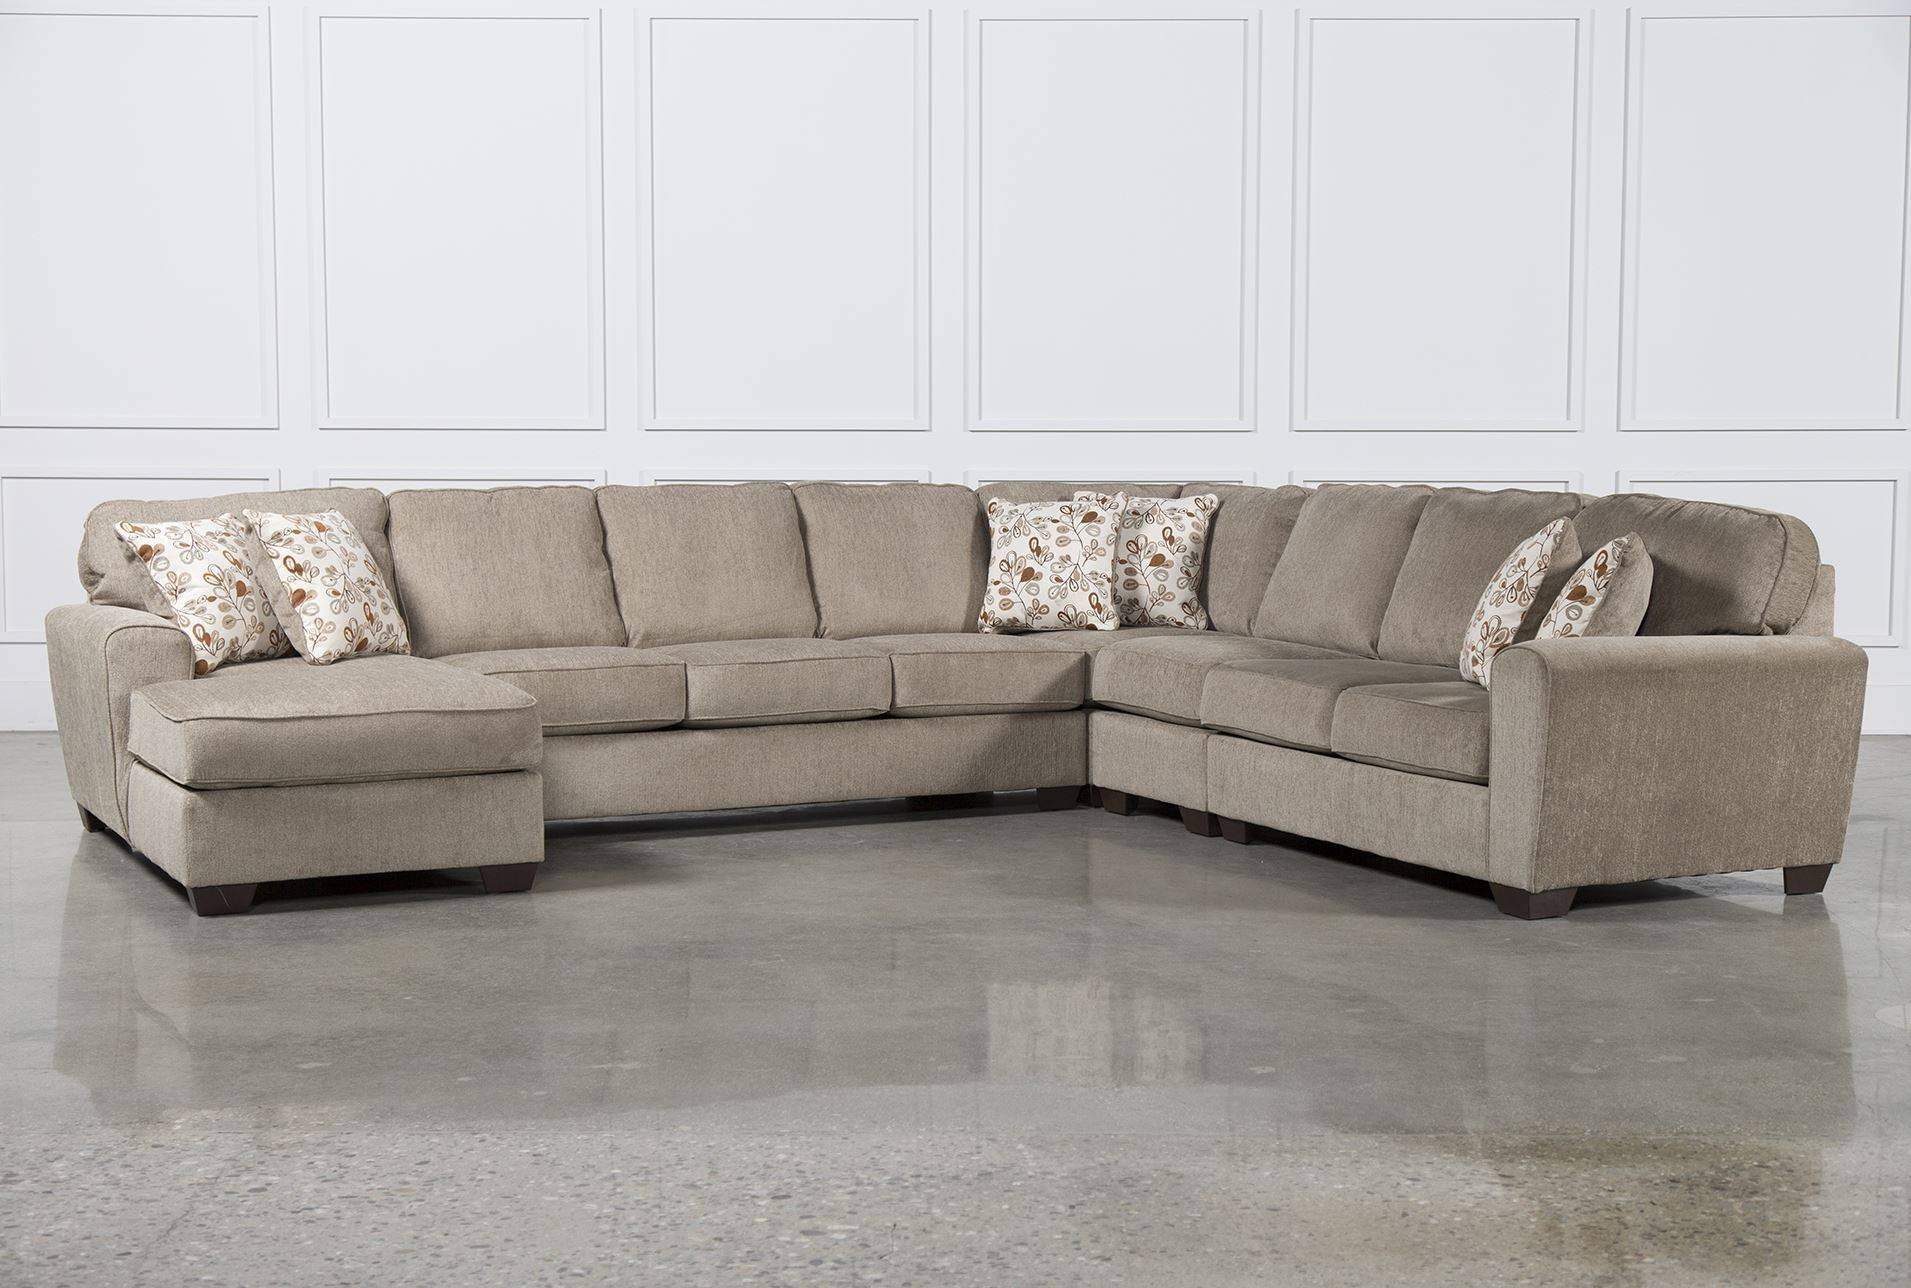 Amazing 5 Piece Sectional Sofas 49 For Diana Dark Brown Leather for Diana Dark Brown Leather Sectional Sofa Set (Image 5 of 30)